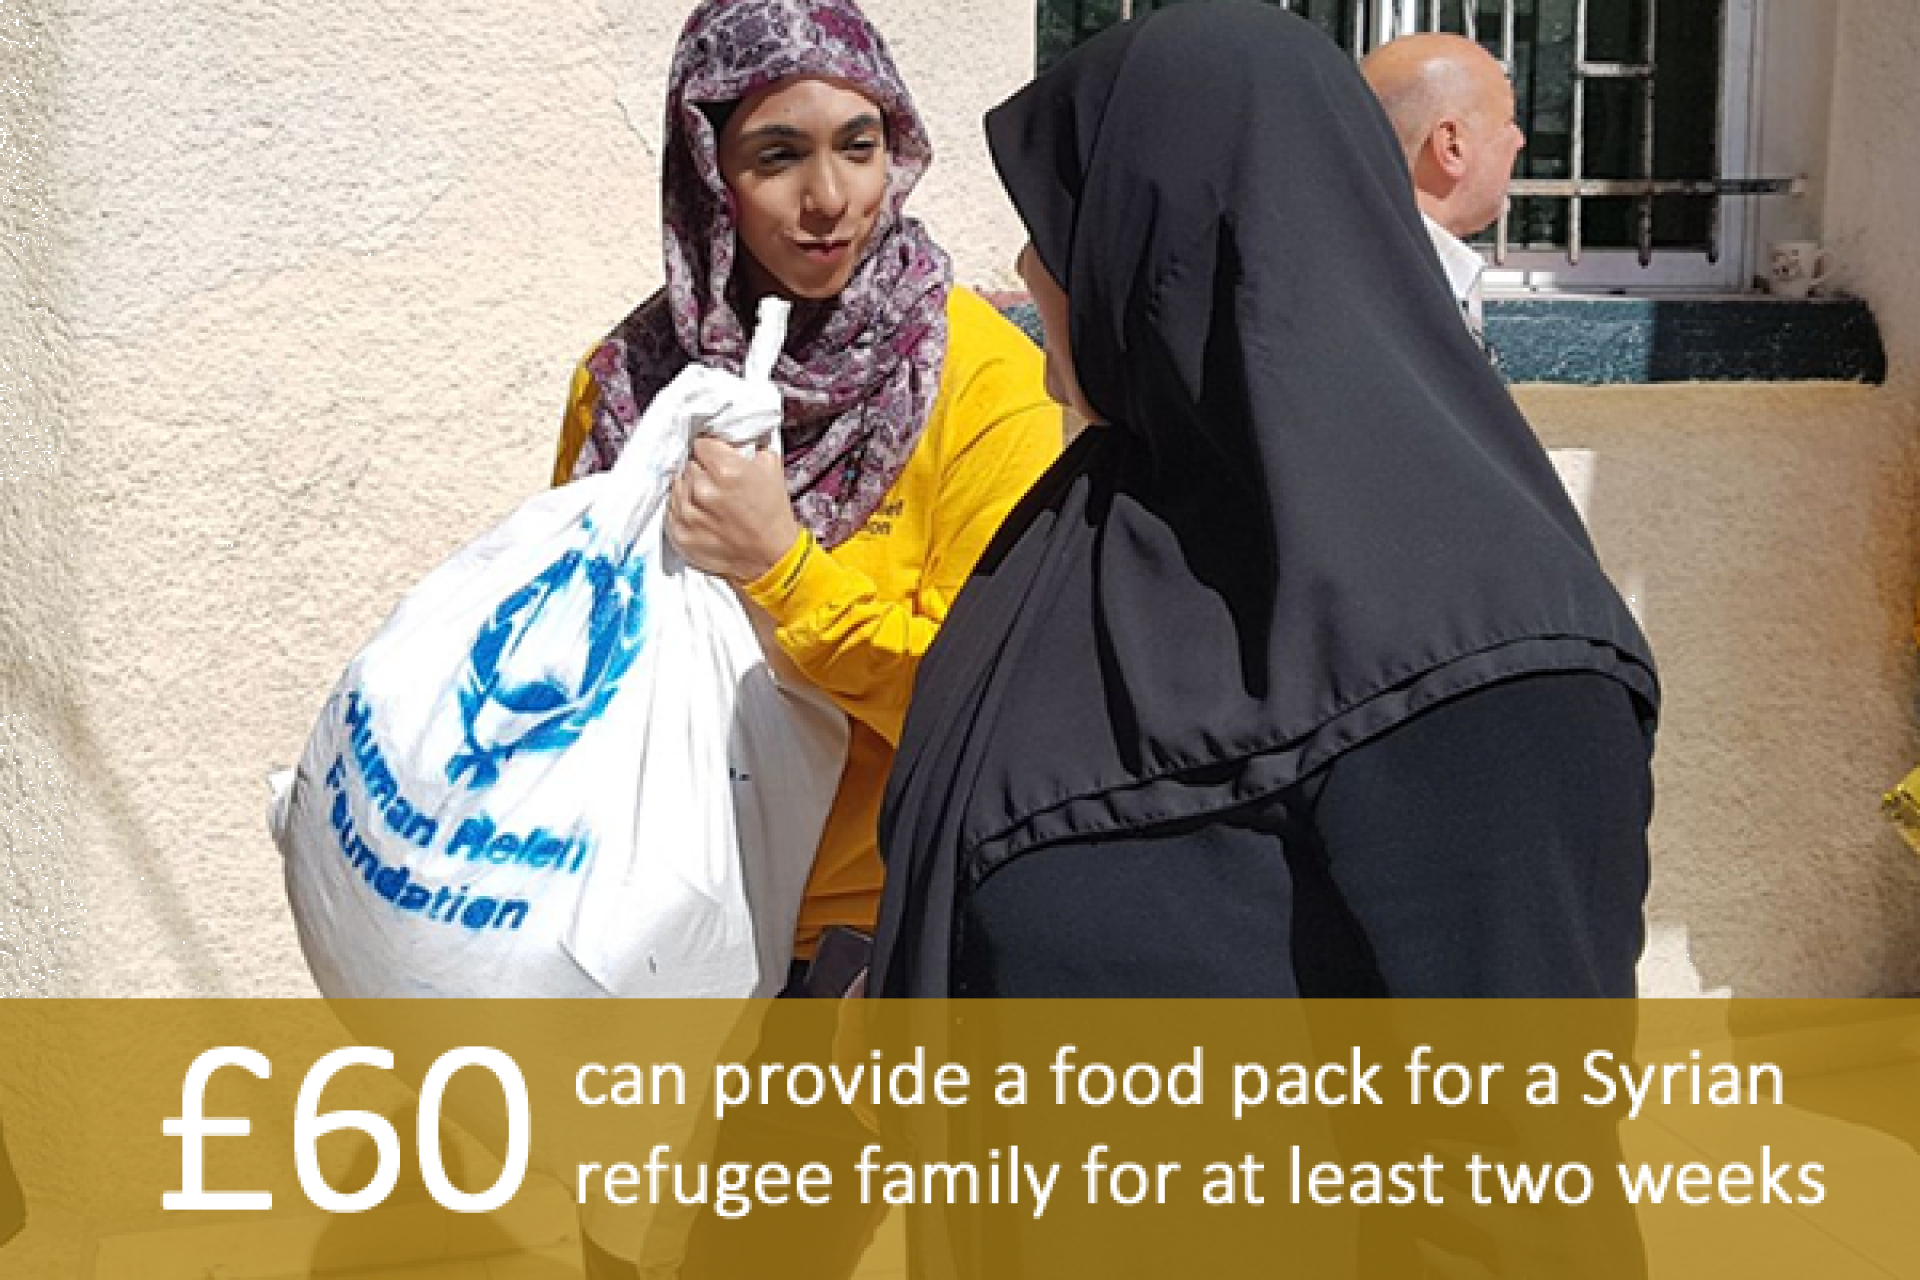 £60 can provide a food pack for a Syrian refugee family for at least two weeks